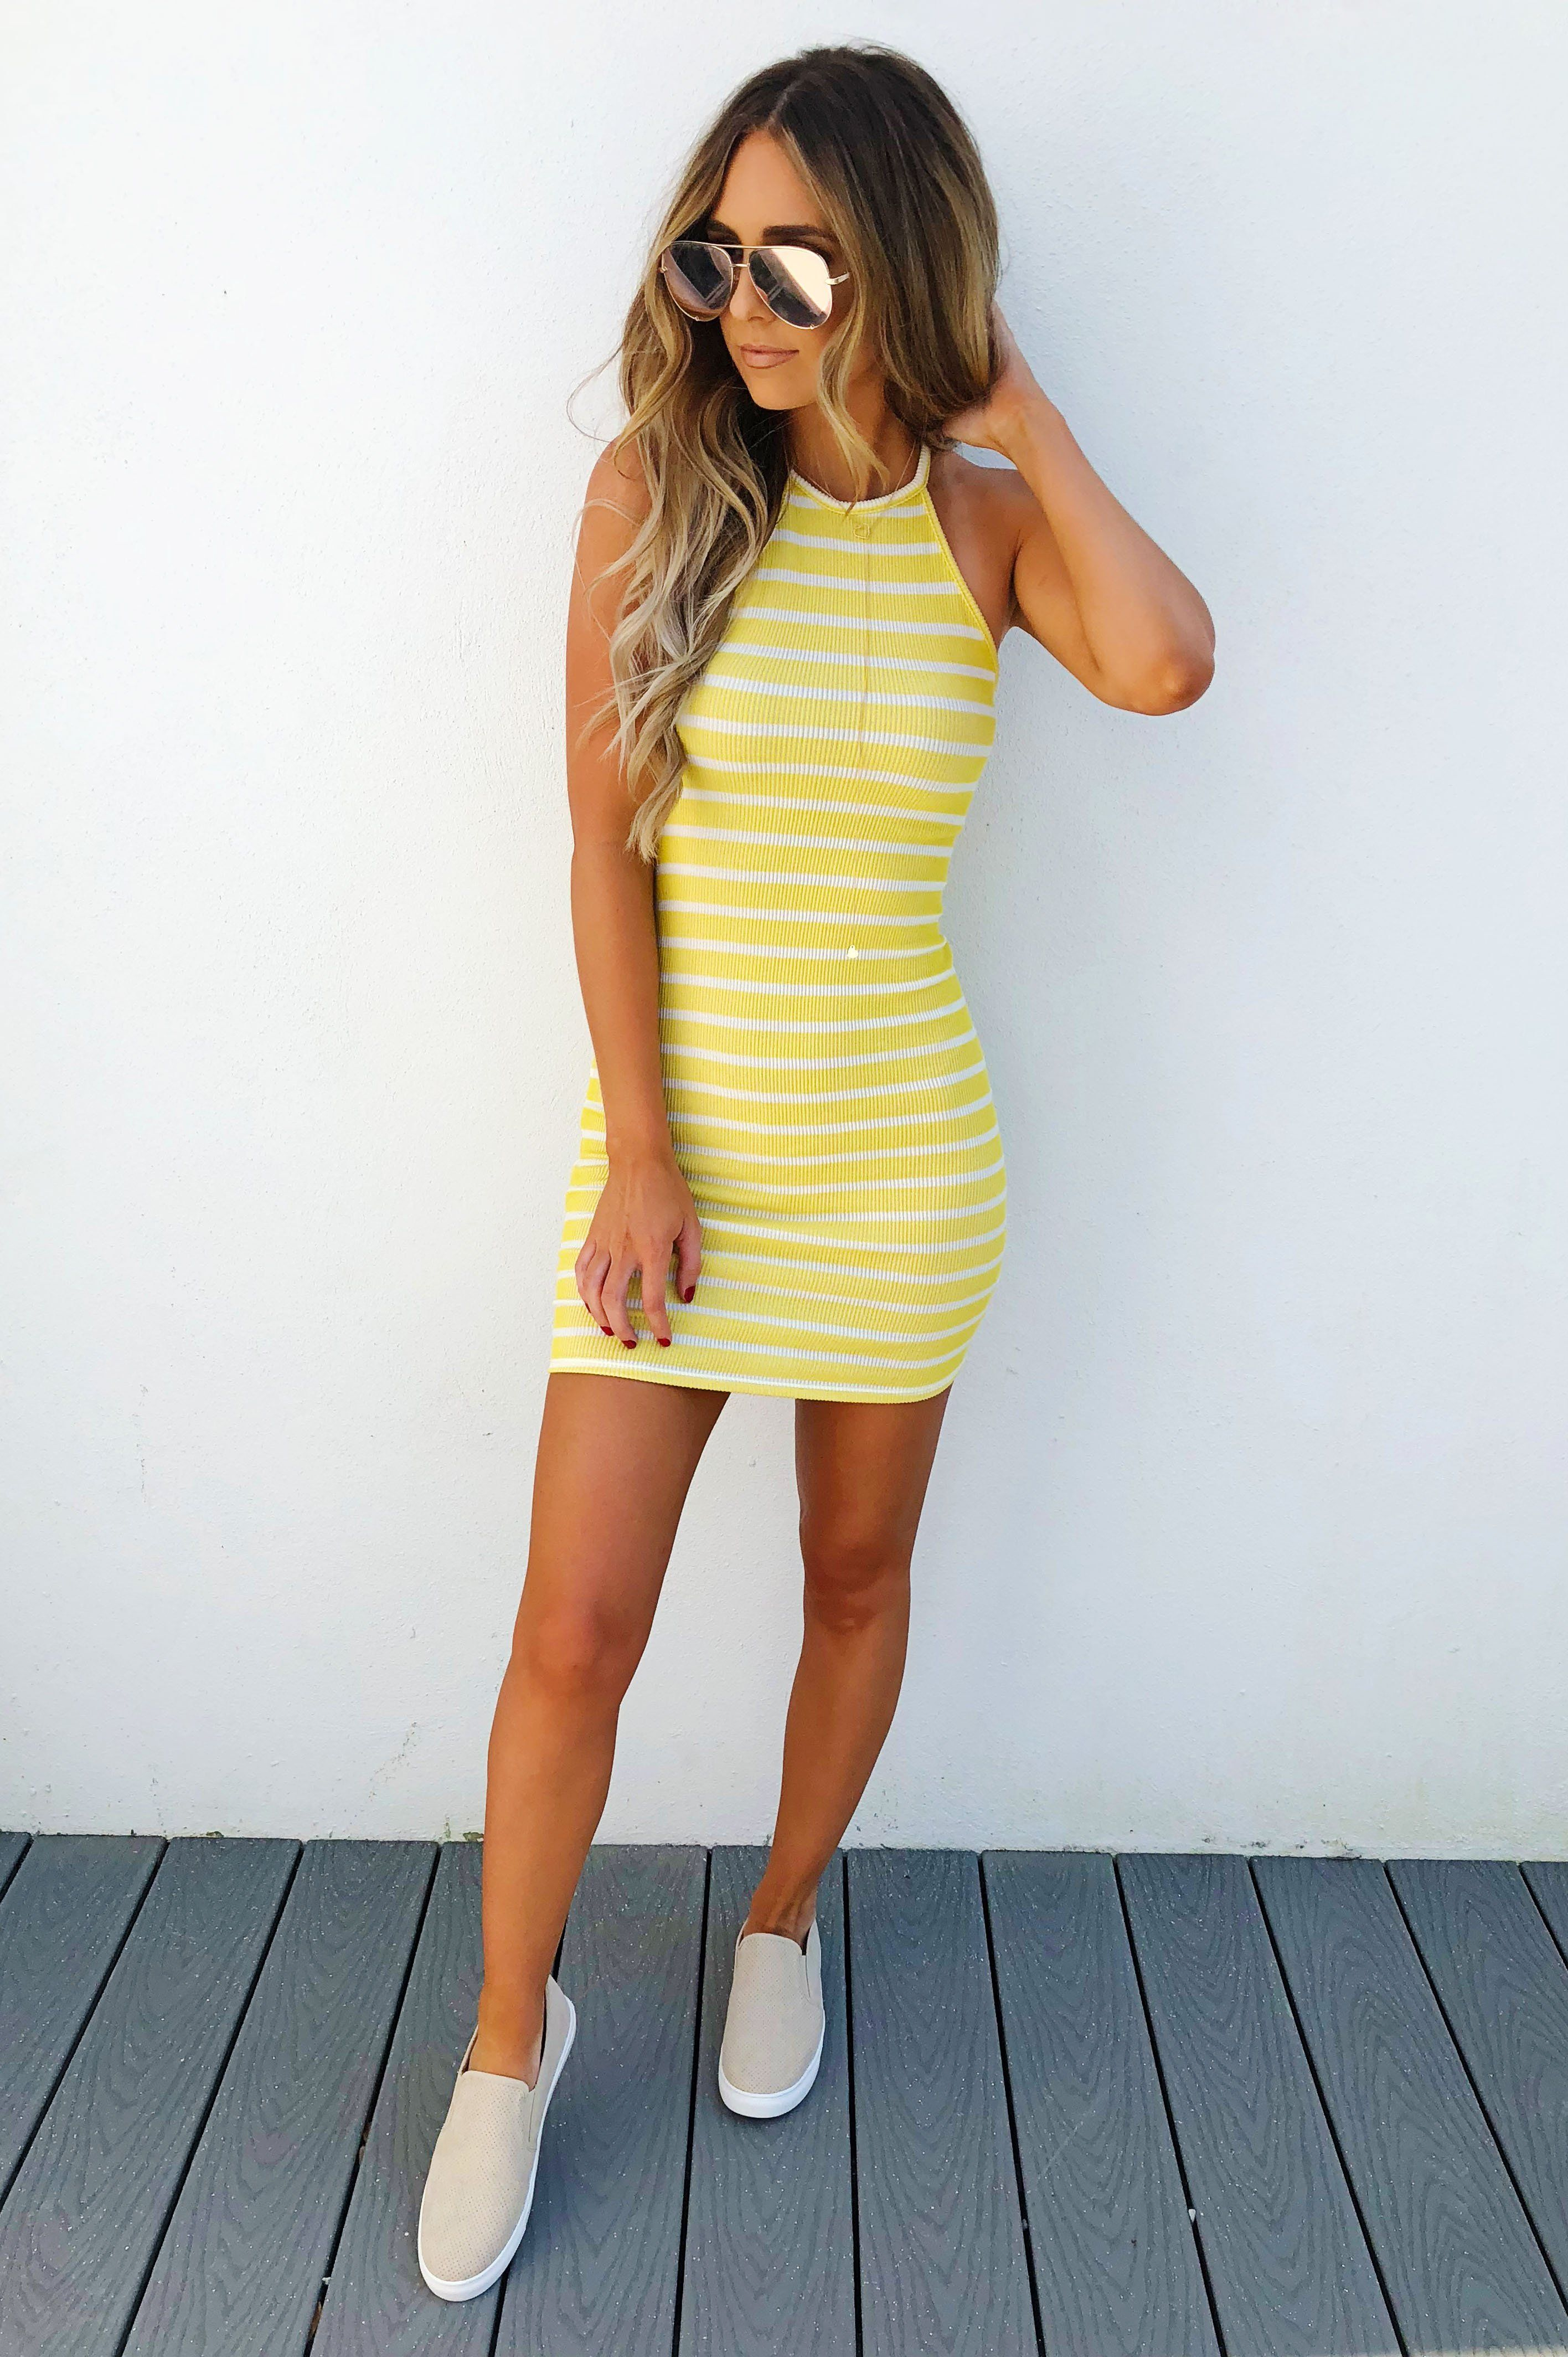 Share To Save 10 On Your Order Instantly Steal My Sunshine Dress Yellow White Clothes Fashion Women Clothing Boutique [ 4256 x 2832 Pixel ]